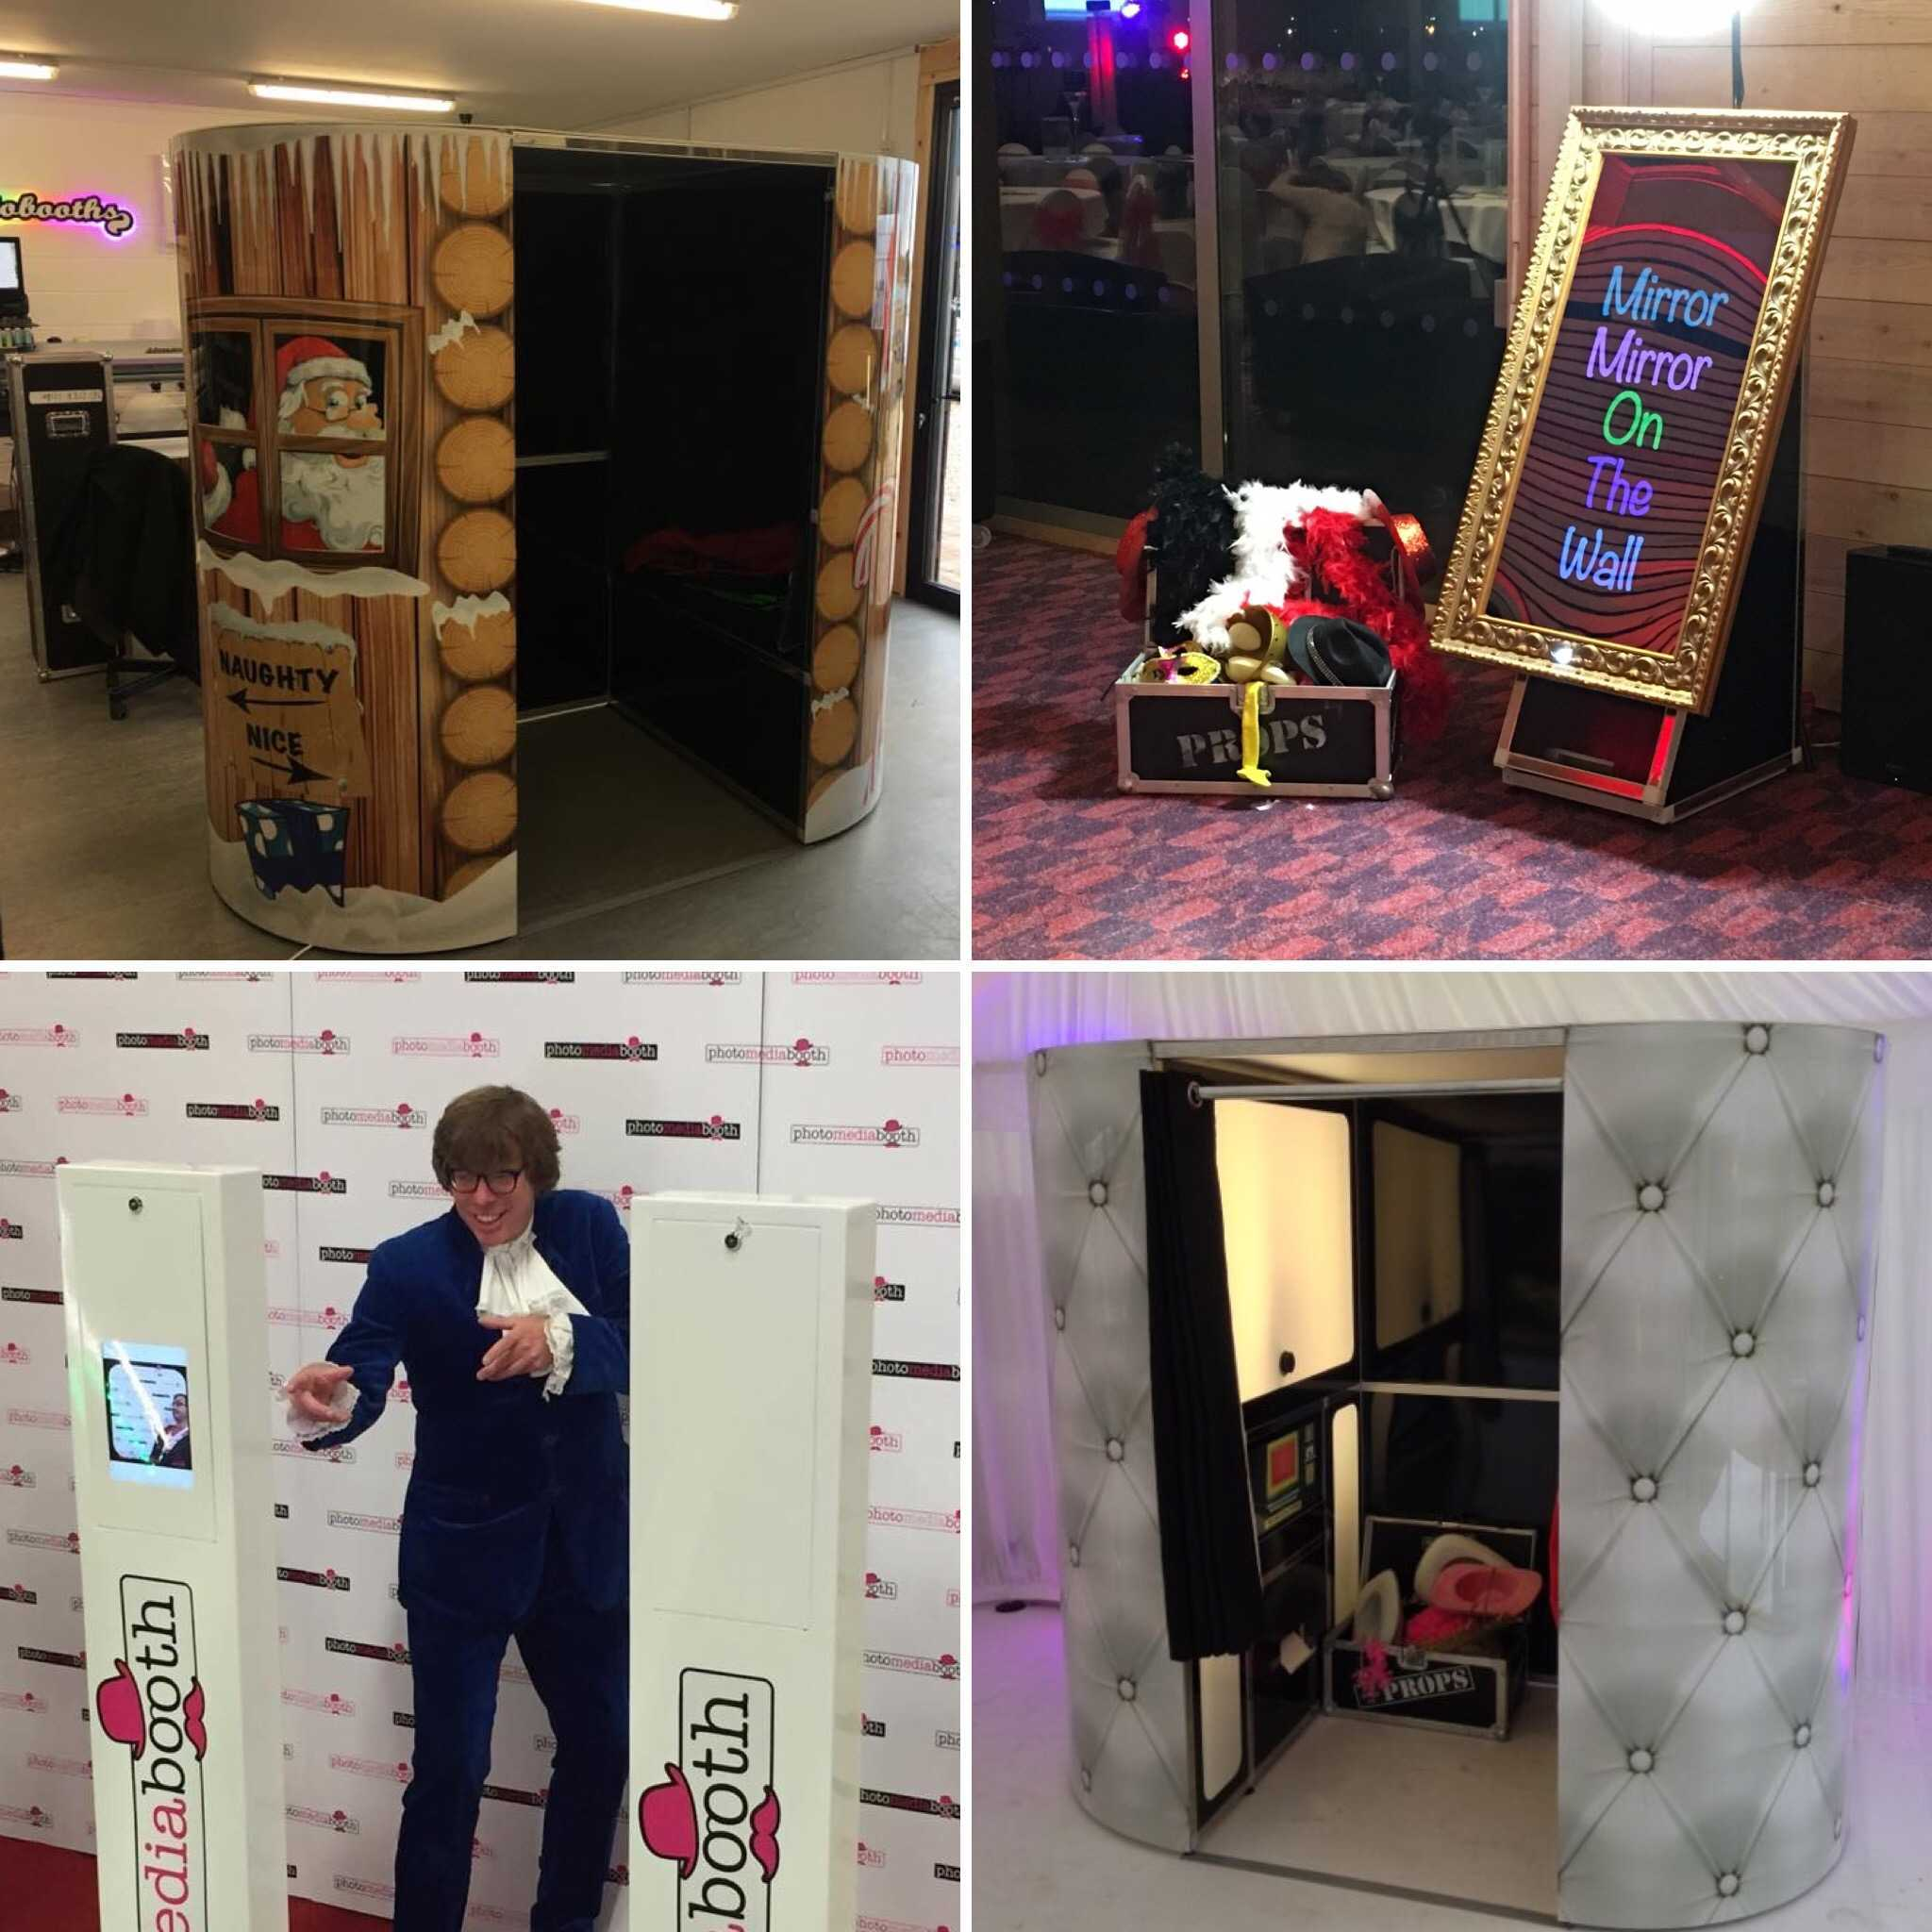 Range of Photo Booth products including Green Screen, Selfie Mirror and Social Media Booth.